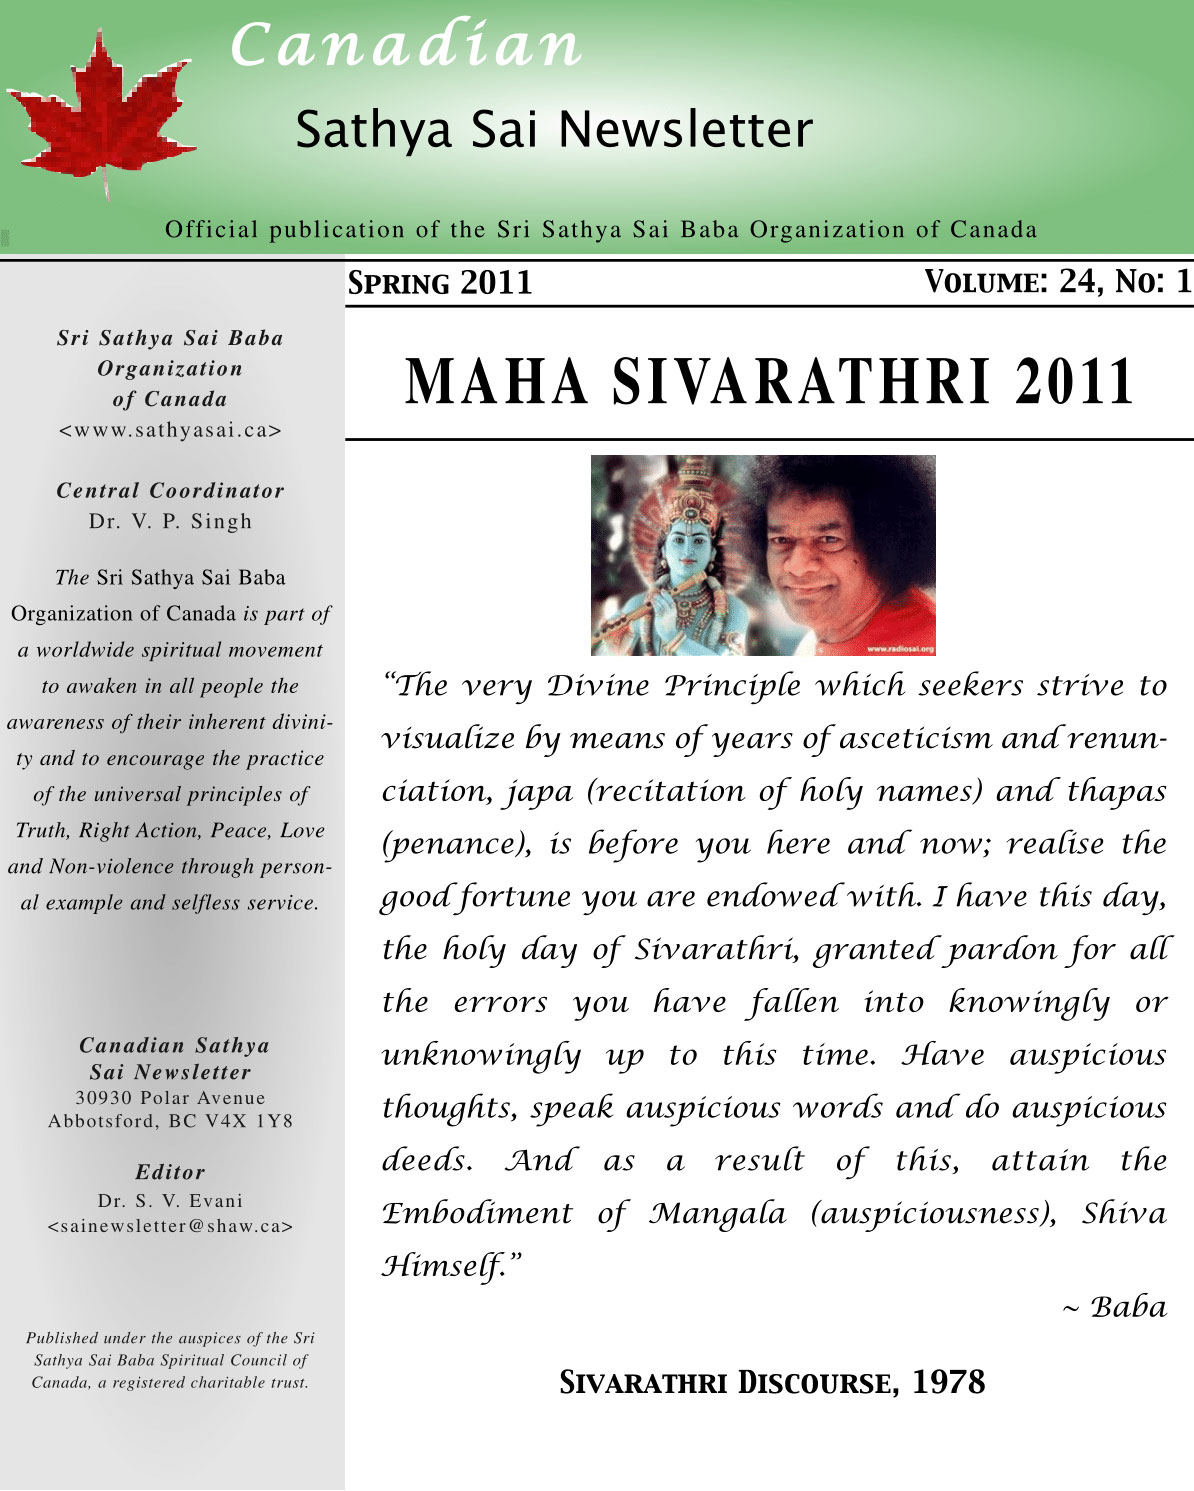 The Canadian Sathya Sai Magazine - Spring 2011